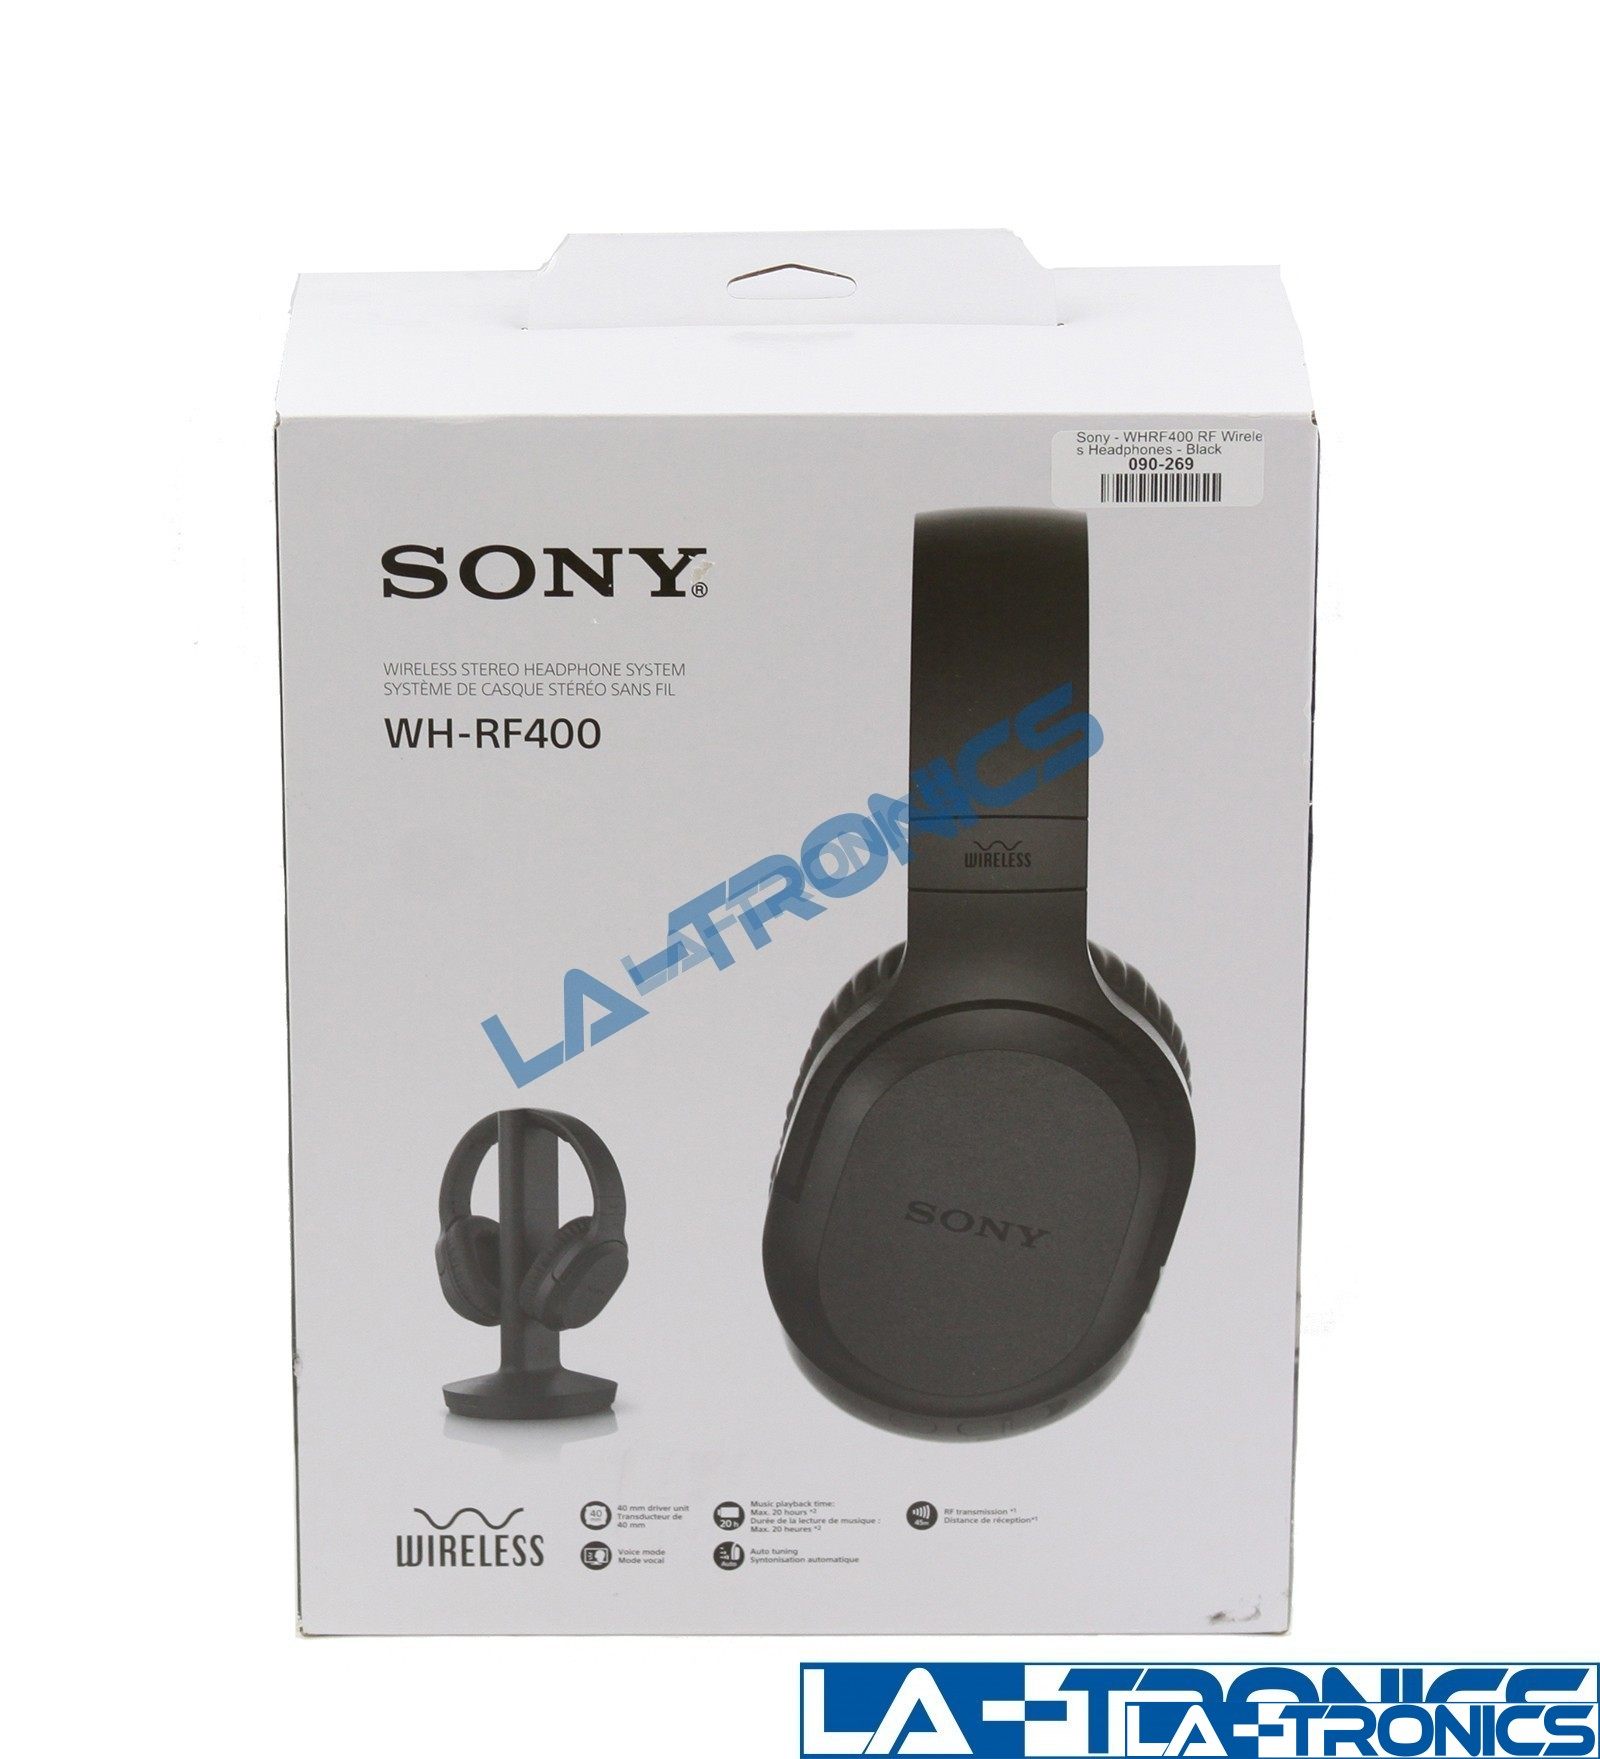 SONY WH-RF400 Wireless Home Theater Headphone System